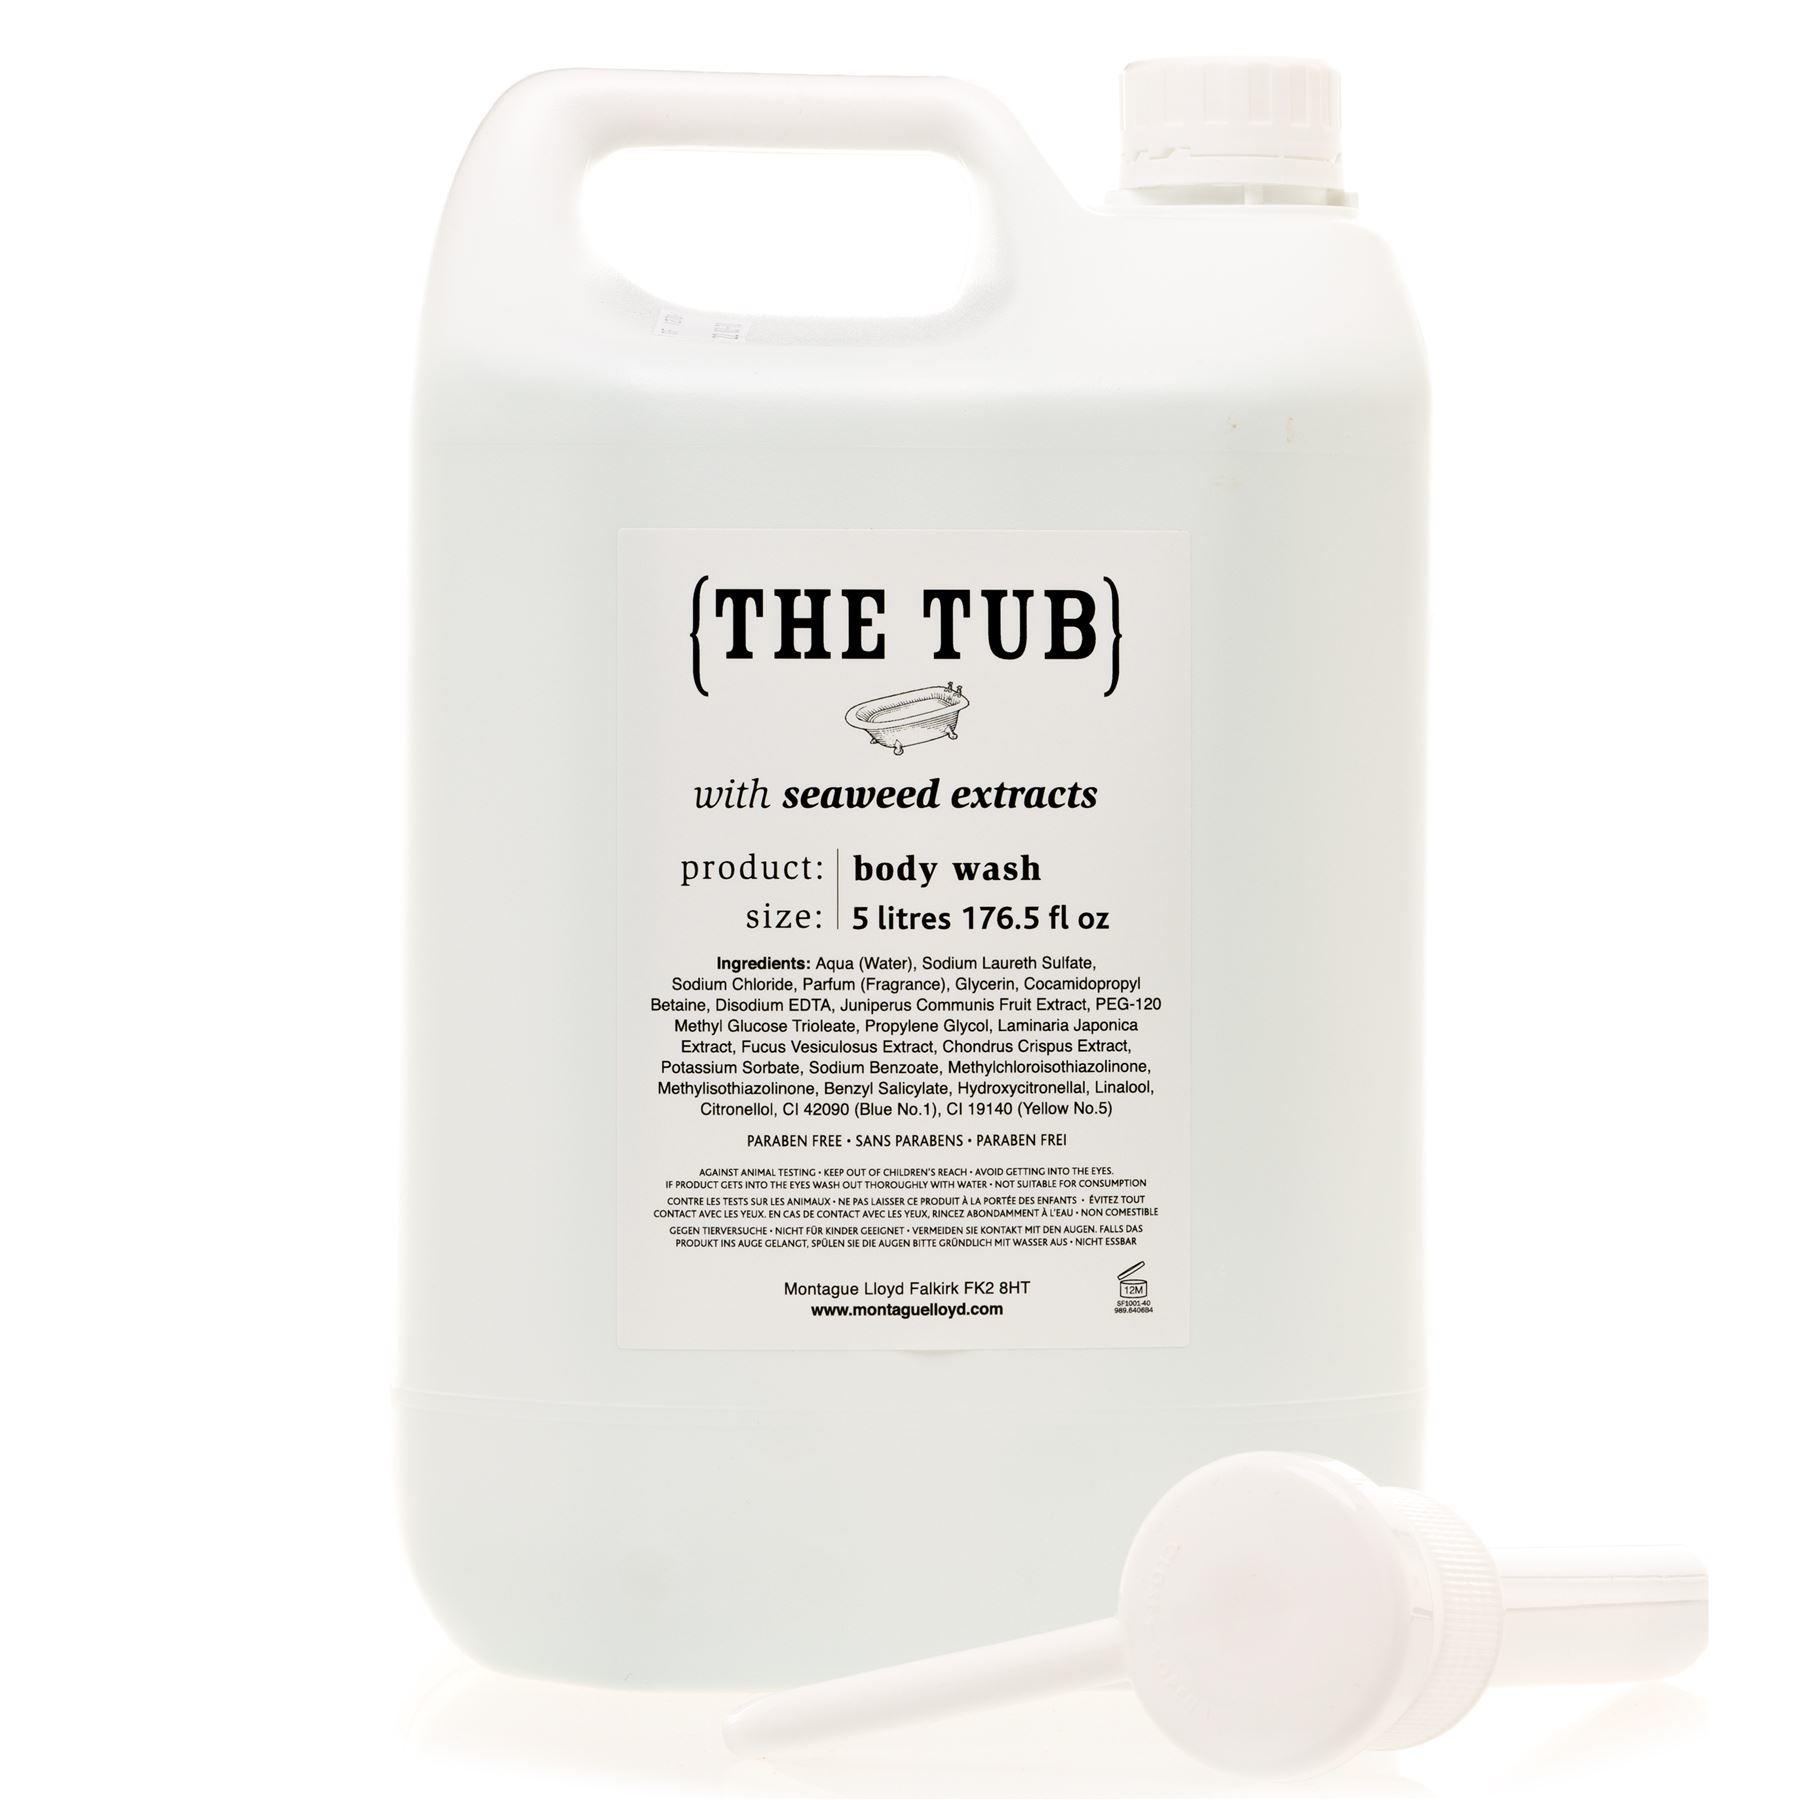 Montague Lloyd Commercial 'The Tub' Seaweed Extracts Body Wash Refill with Pump Dispenser